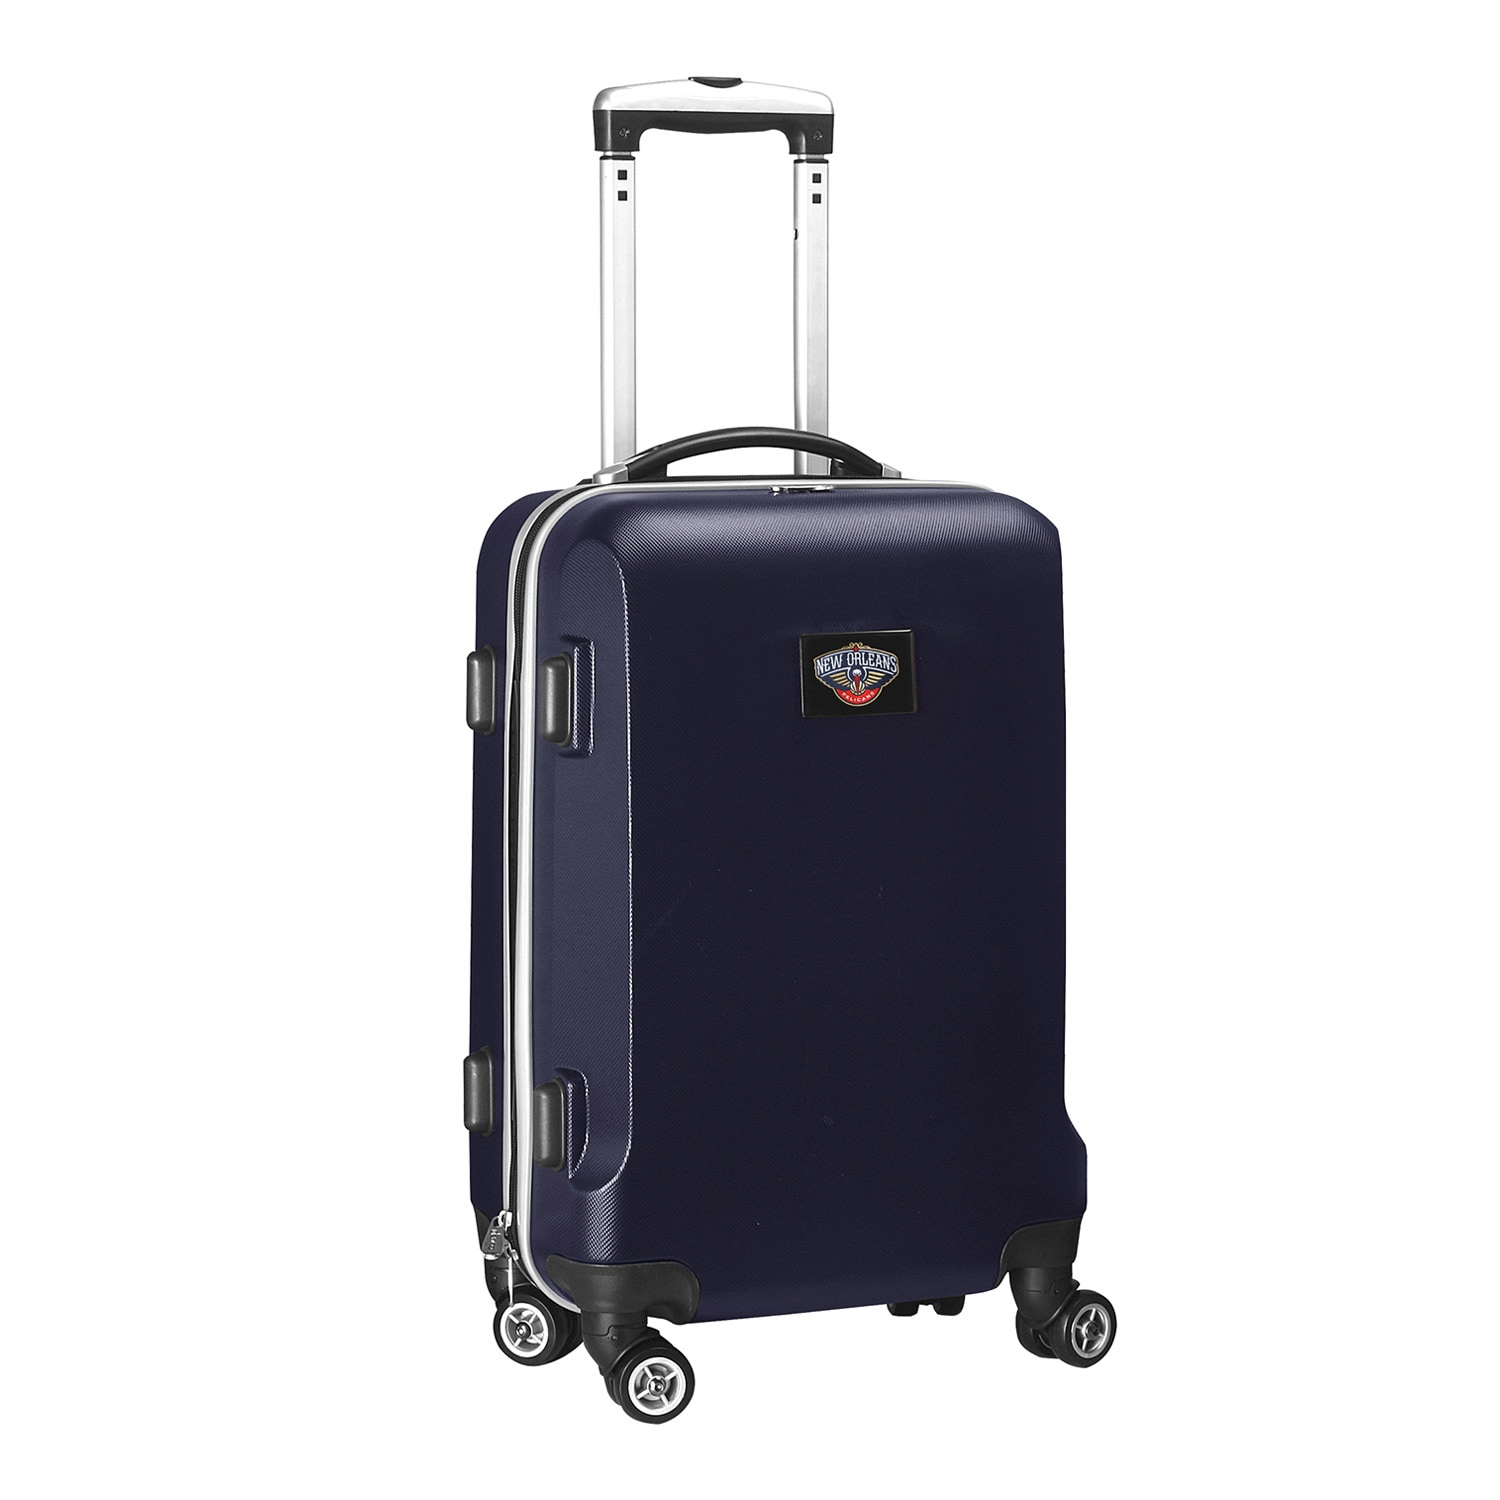 """New Orleans Pelicans 21"""" 8-Wheel Hardcase Spinner Carry-On - Navy"""